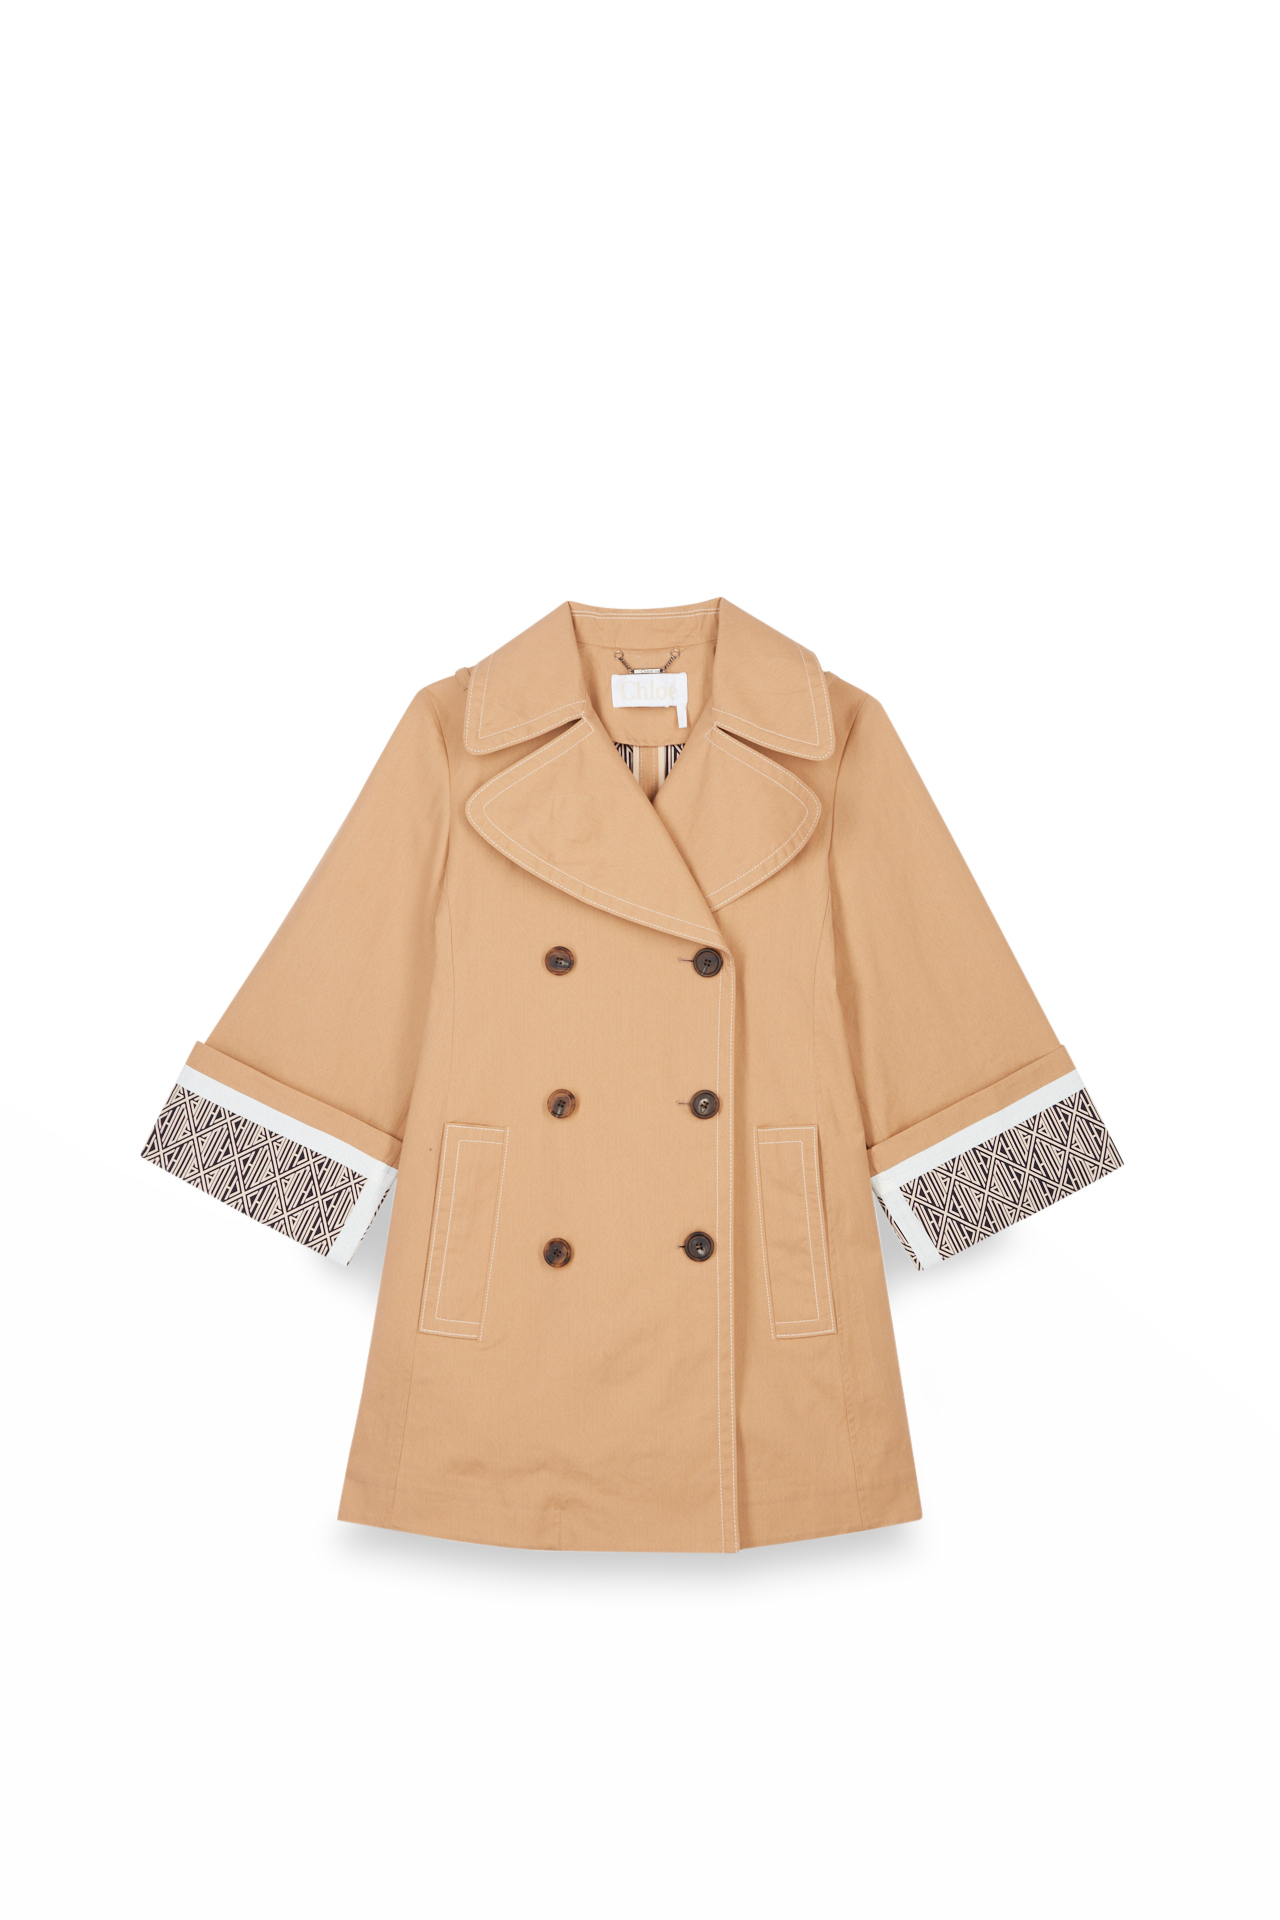 Chloé Trench coat with printed sleeves La Vallée Village